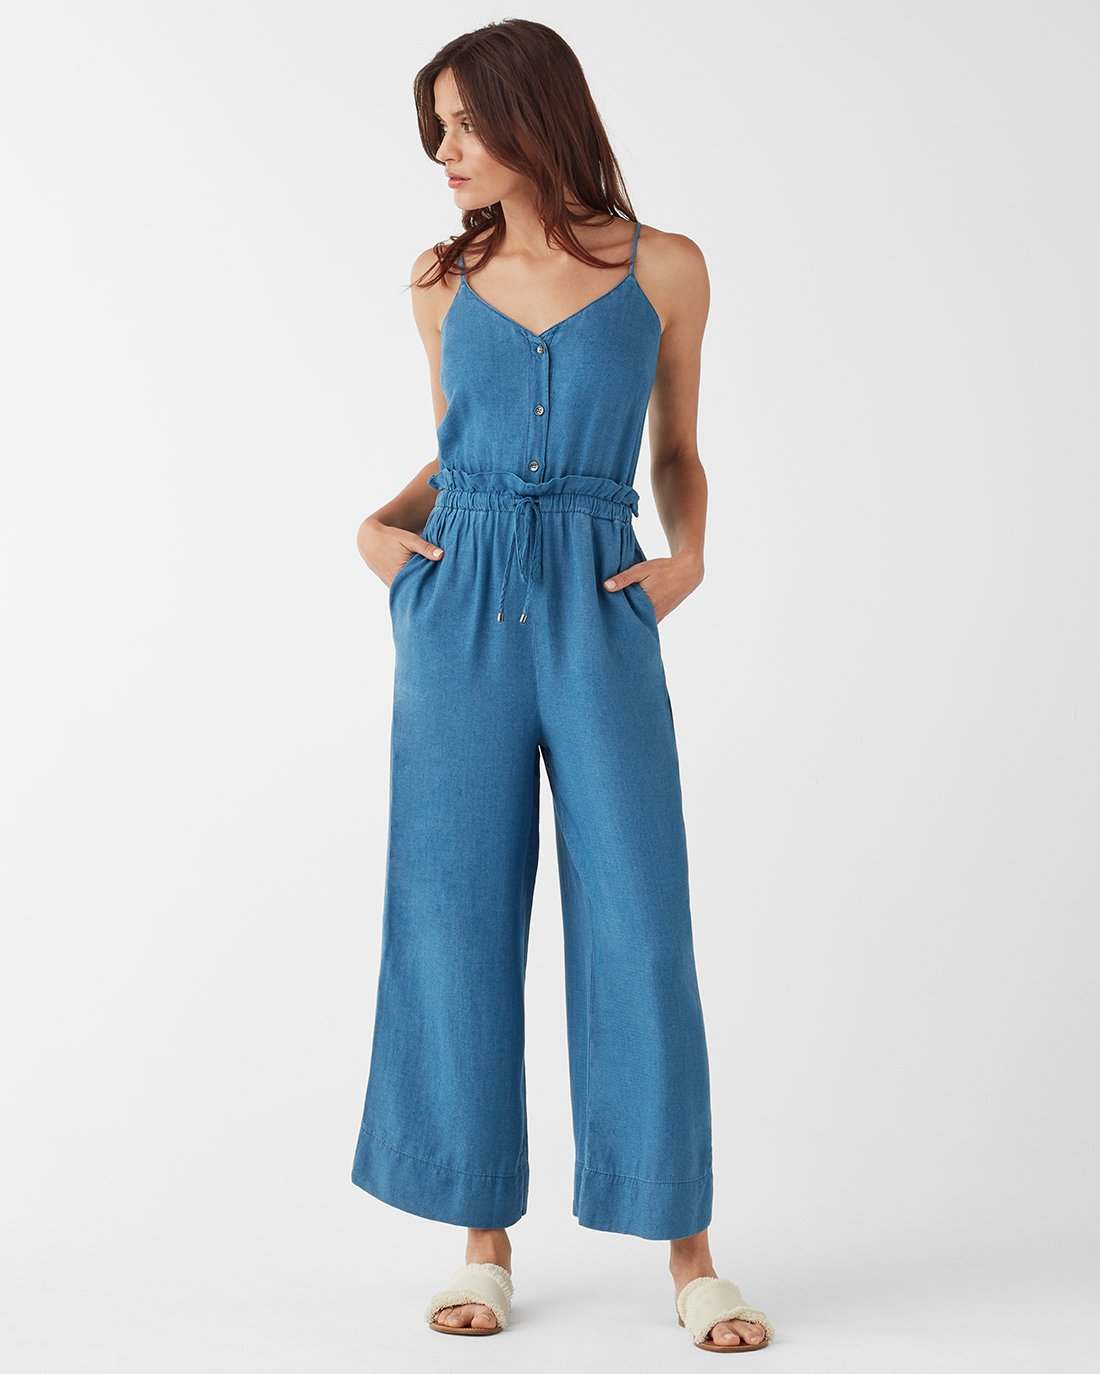 Splendid Crosshatch Indigo Tie Waist Jumpsuit